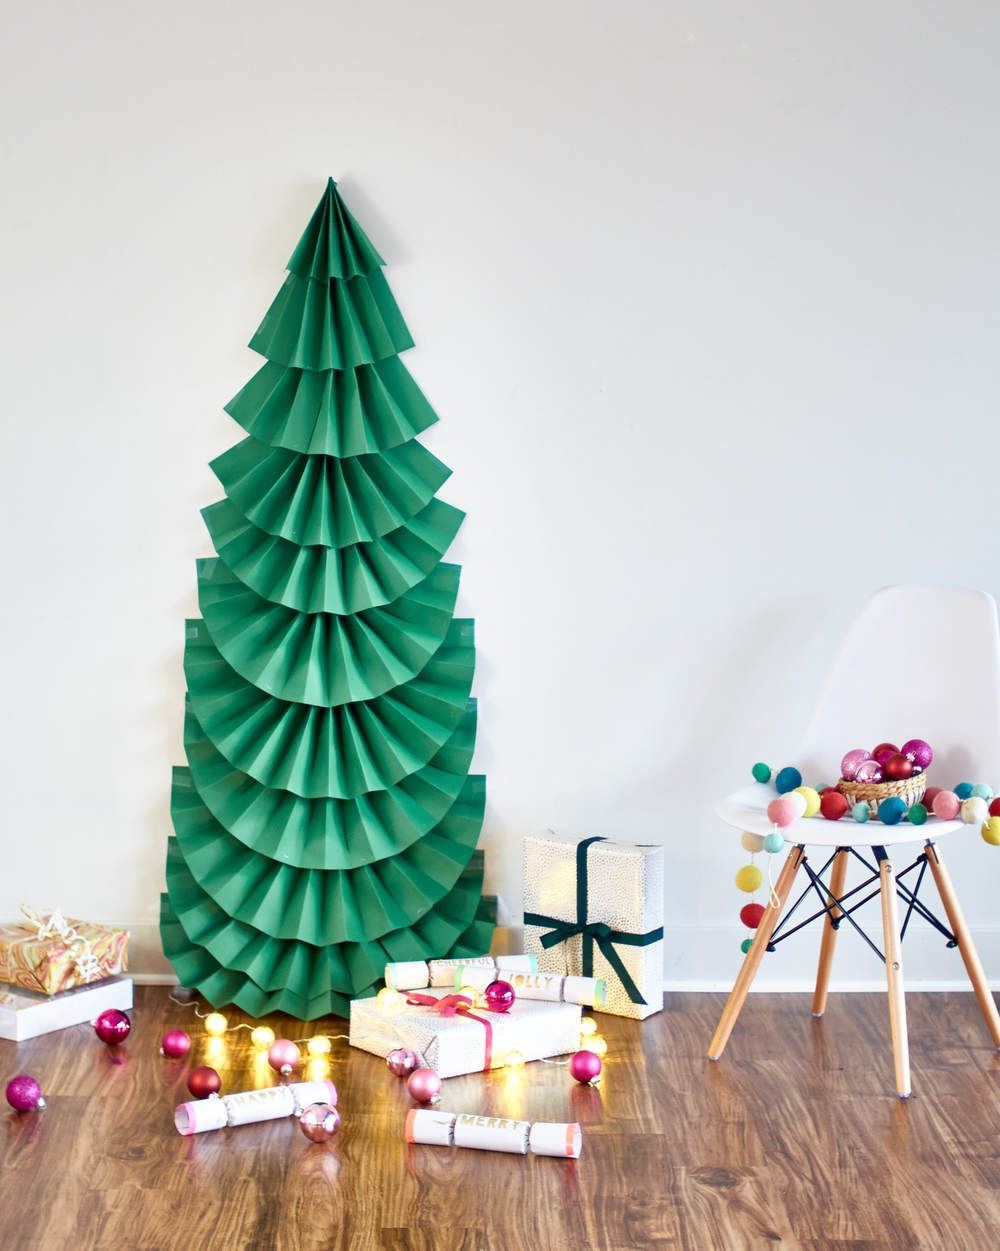 Make It Diy Life Sized Folded Paper Christmas Tree Alternative Christmas Tree Diy Paper Christmas Tree Paper Christmas Tree